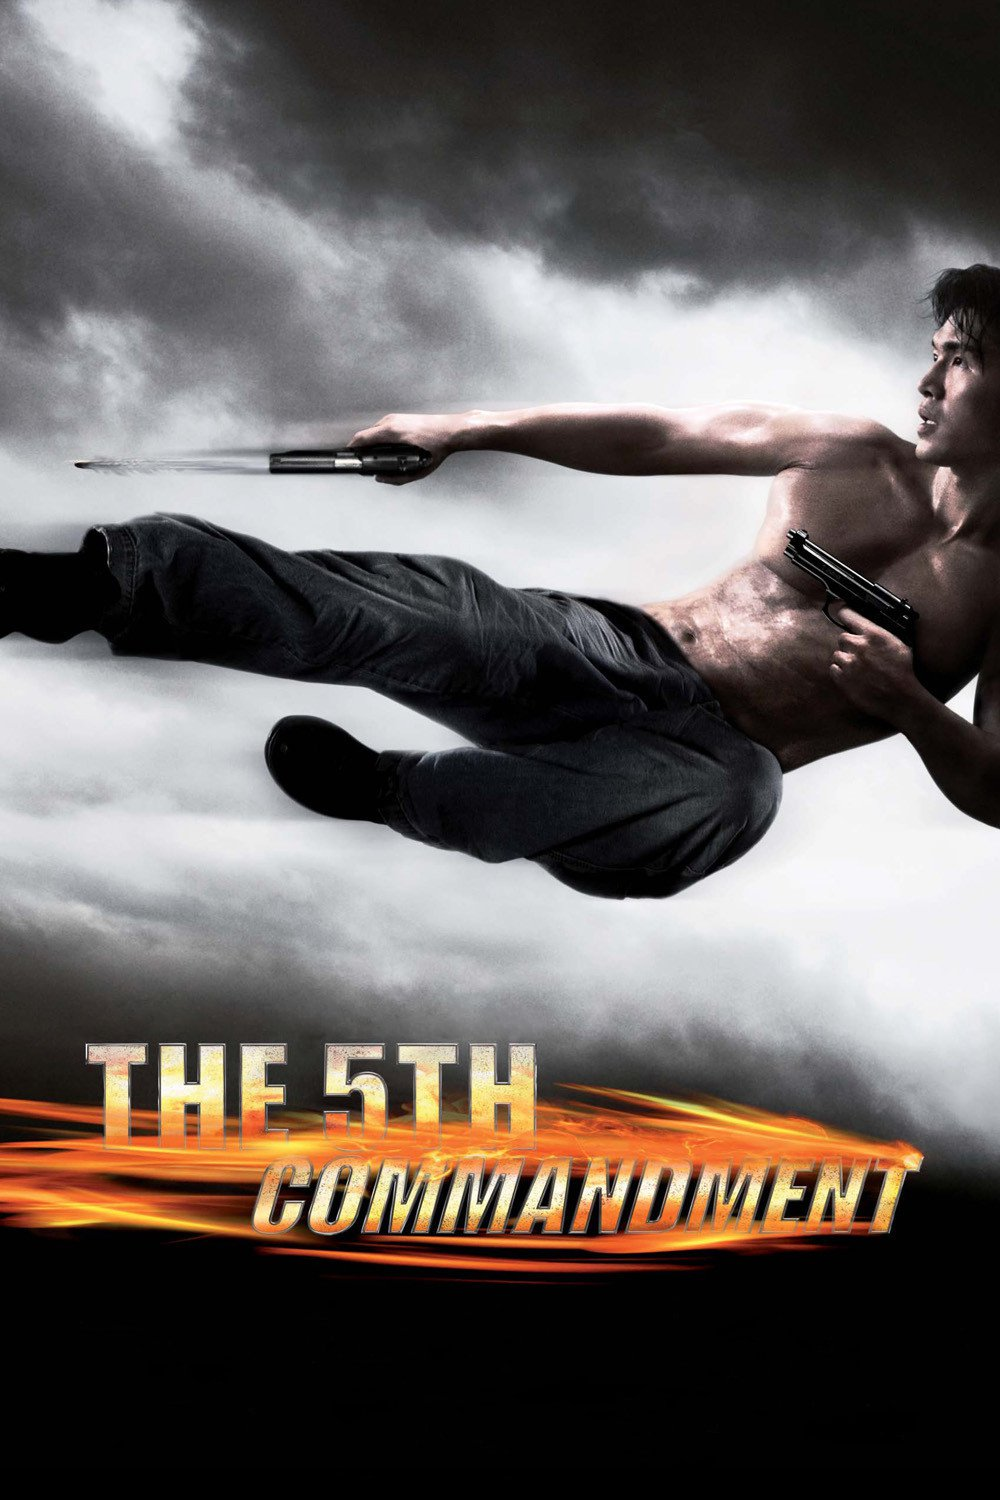 The Fifth Commandment, 2008